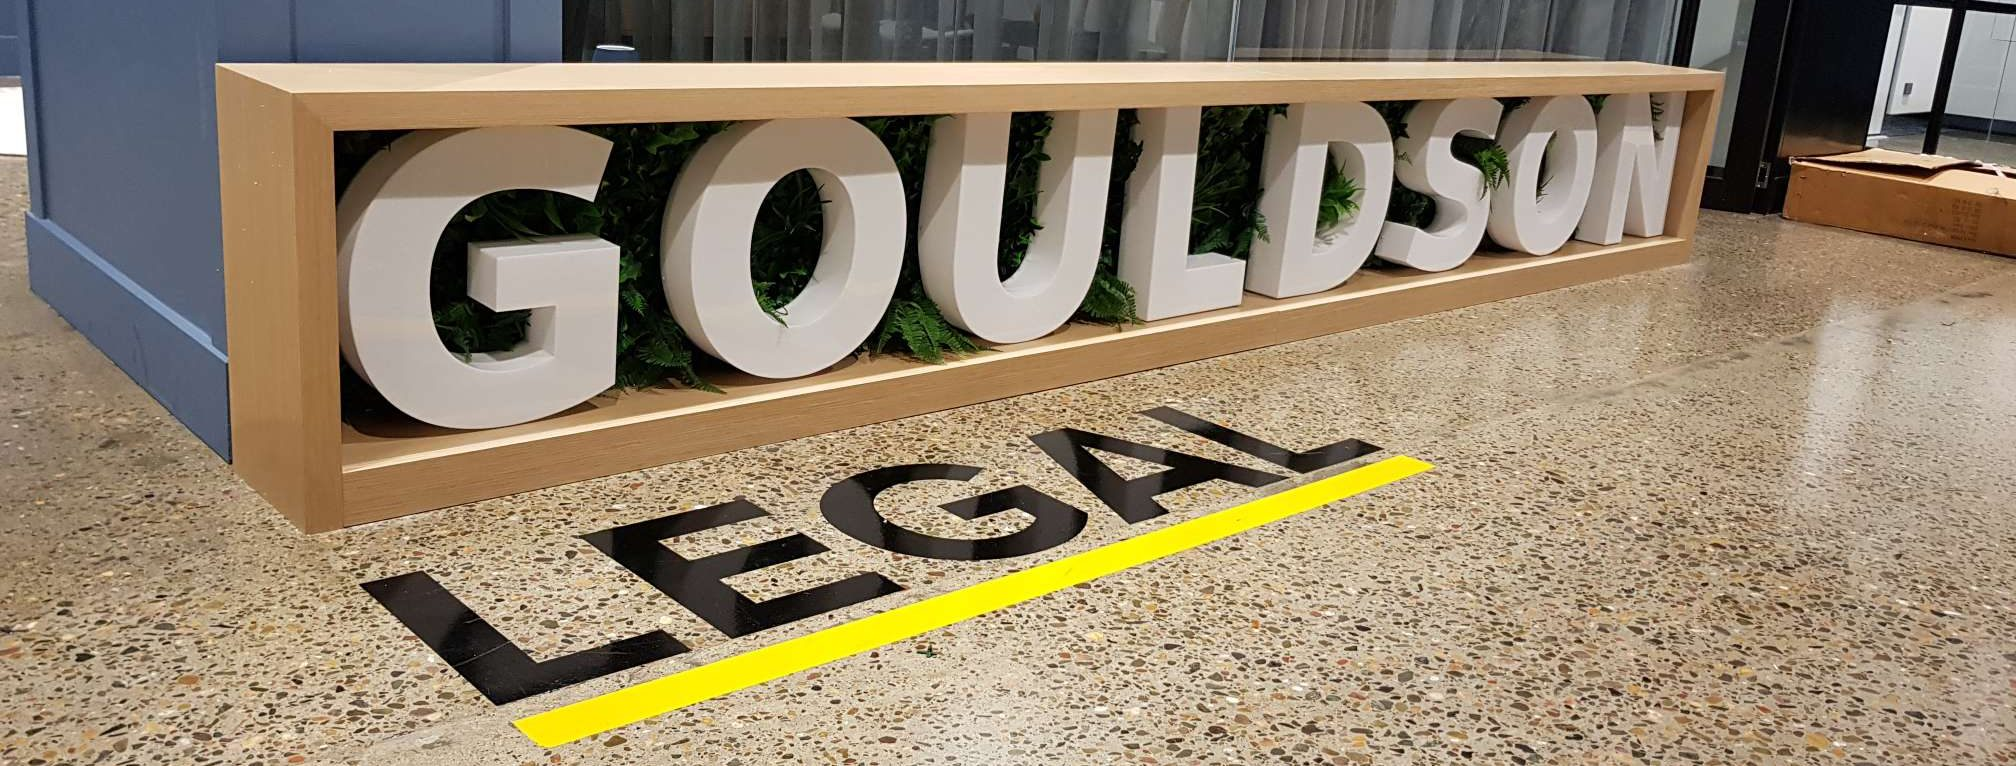 3D Extrusion Signs